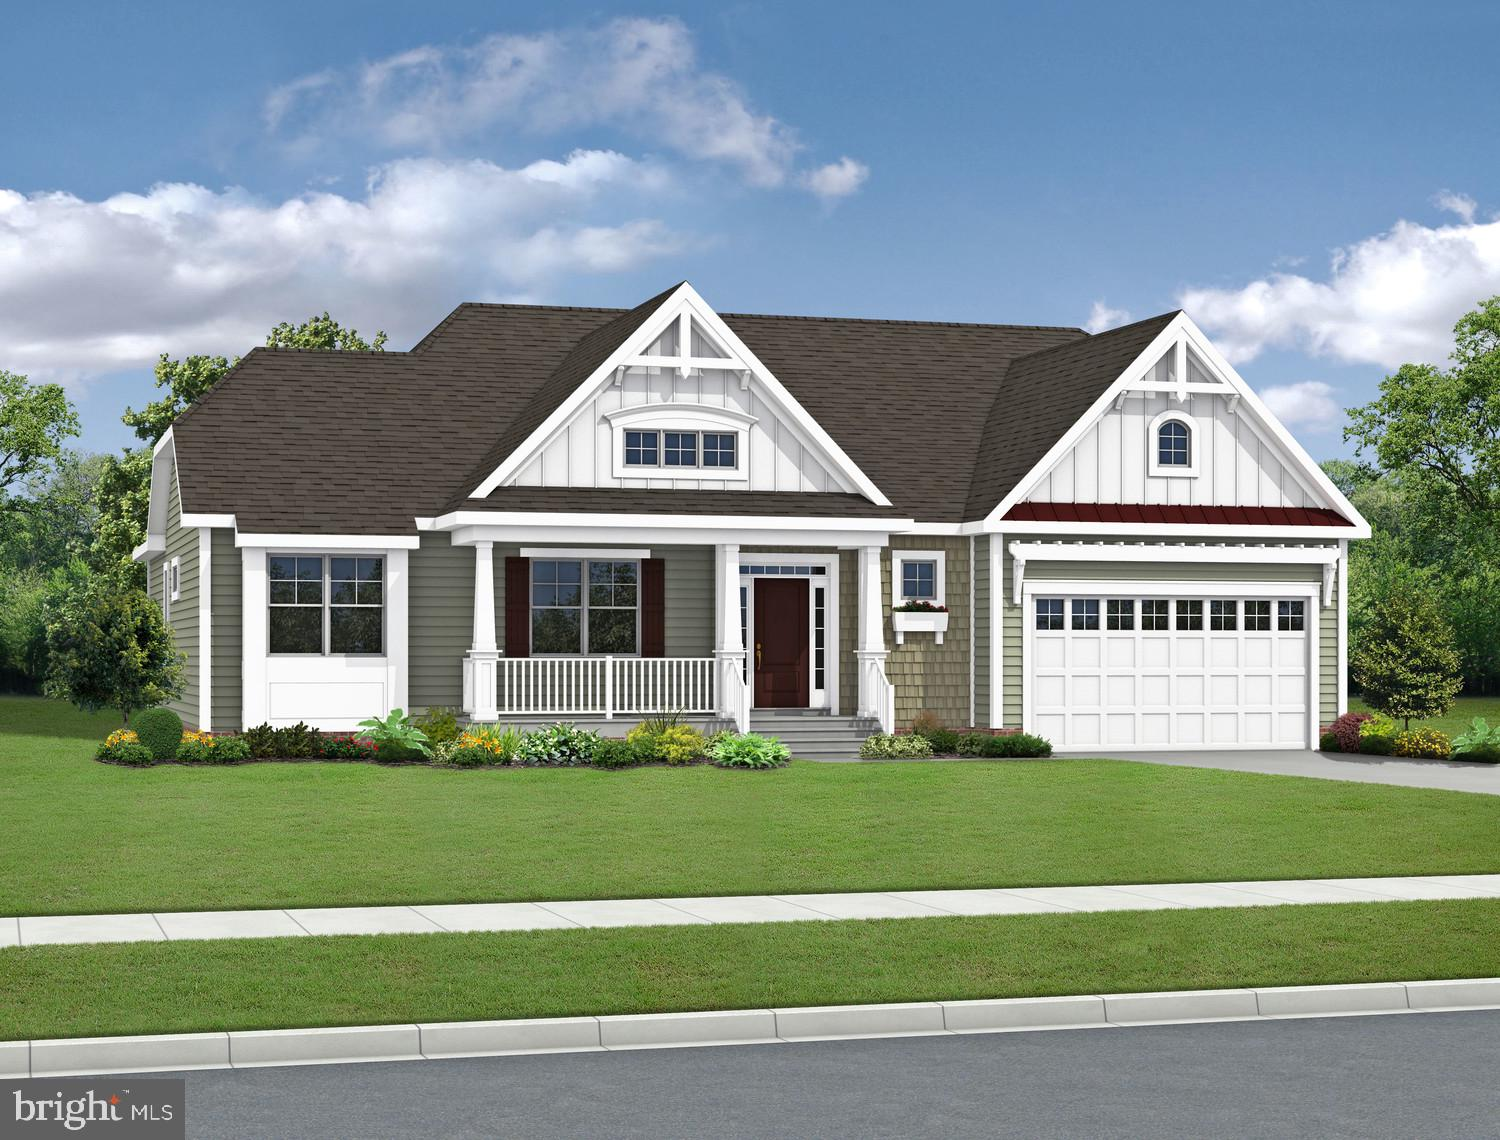 Walden is a new community in the Lewes area tucked away from the coastal hustle and bustle. Enjoy water access for kayaking/fishing on Burton~s pond and the variety of community amenities including clubhouse with fitness center, rec room and bar, outdoor pools, courtyard with tiki bar and BBQ area, 2 pickleball courts, multi-use court (tennis/basketball), playground and walking paths. The Mayberry plan is a ranch home starting at 2,266 heated square feet. Includes 3 bedrooms, 2 baths and a flex space perfect for a home office. This home has a split-bedroom design where the owner~s suite and guest bedrooms are on opposite sides offering privacy and an open floorplan. The kitchen includes a walk-in pantry and is open to the great room and dining area. Options available to personalize including additional bedrooms, baths, and outdoor spaces. Sales office open off-site by appointment only, contact Joe at 302-228-4488 to schedule visit and learn about current incentives. *Base price includes $20,000 incentive value *Photos re of a model home with upgrades. Unlicensed onsite sales professional represents the Seller only. Sales office open off-site by appointment only.